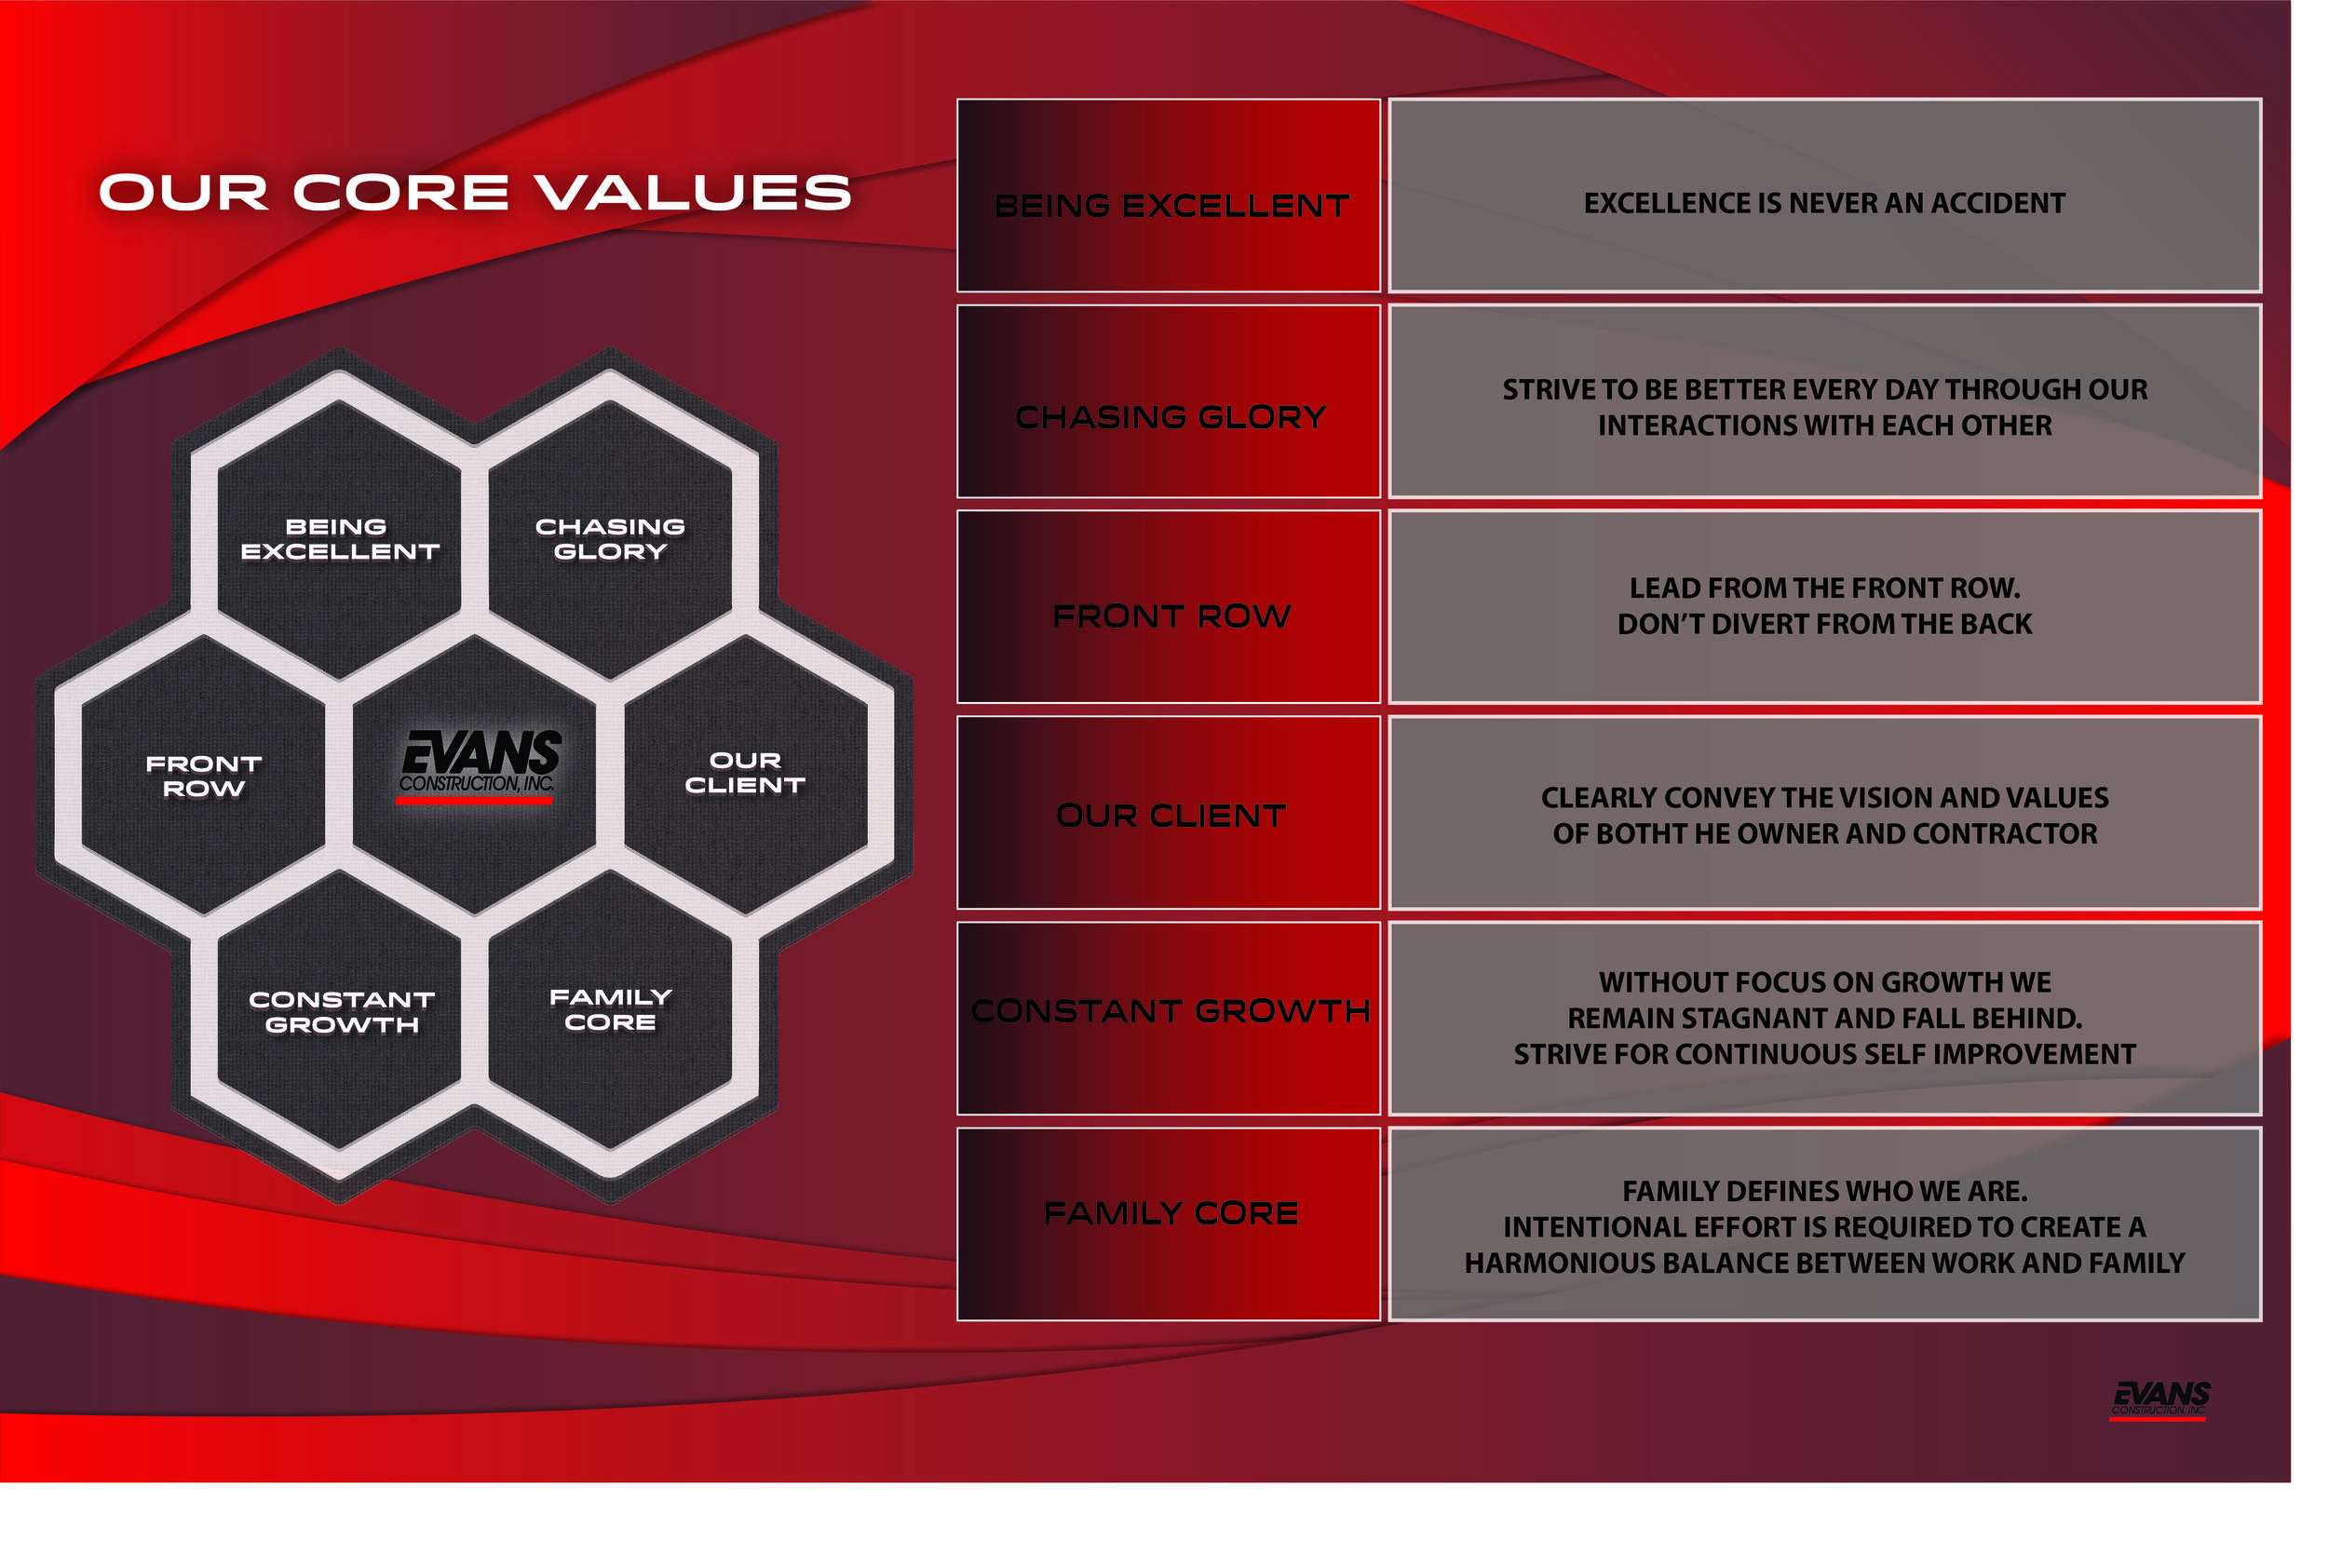 corporate values poster explained REVISED.jpg